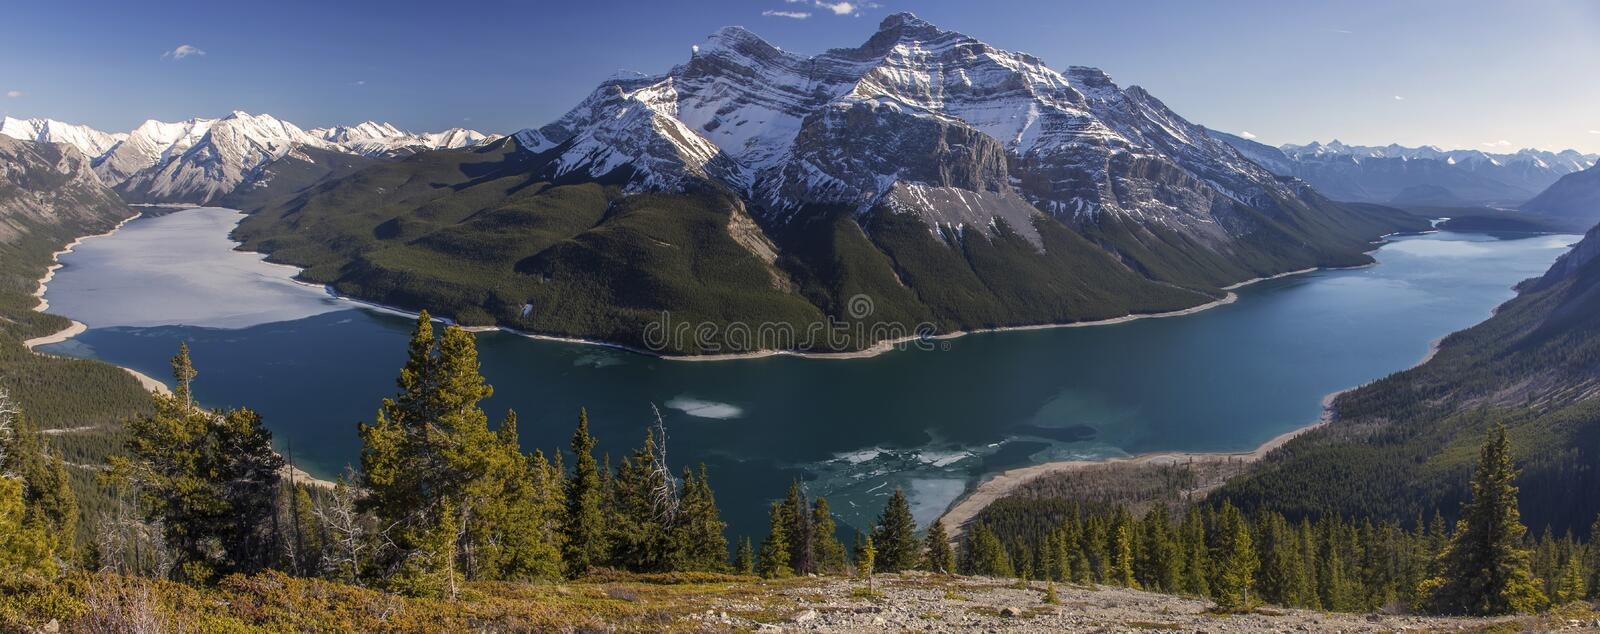 Lake Minnewanka Banff National Park Canadian Rocky Mountains. Panoramic Landscape view of Snowy Mountain tops above Lake Minnewanka from Aylmer Lookout in late royalty free stock images